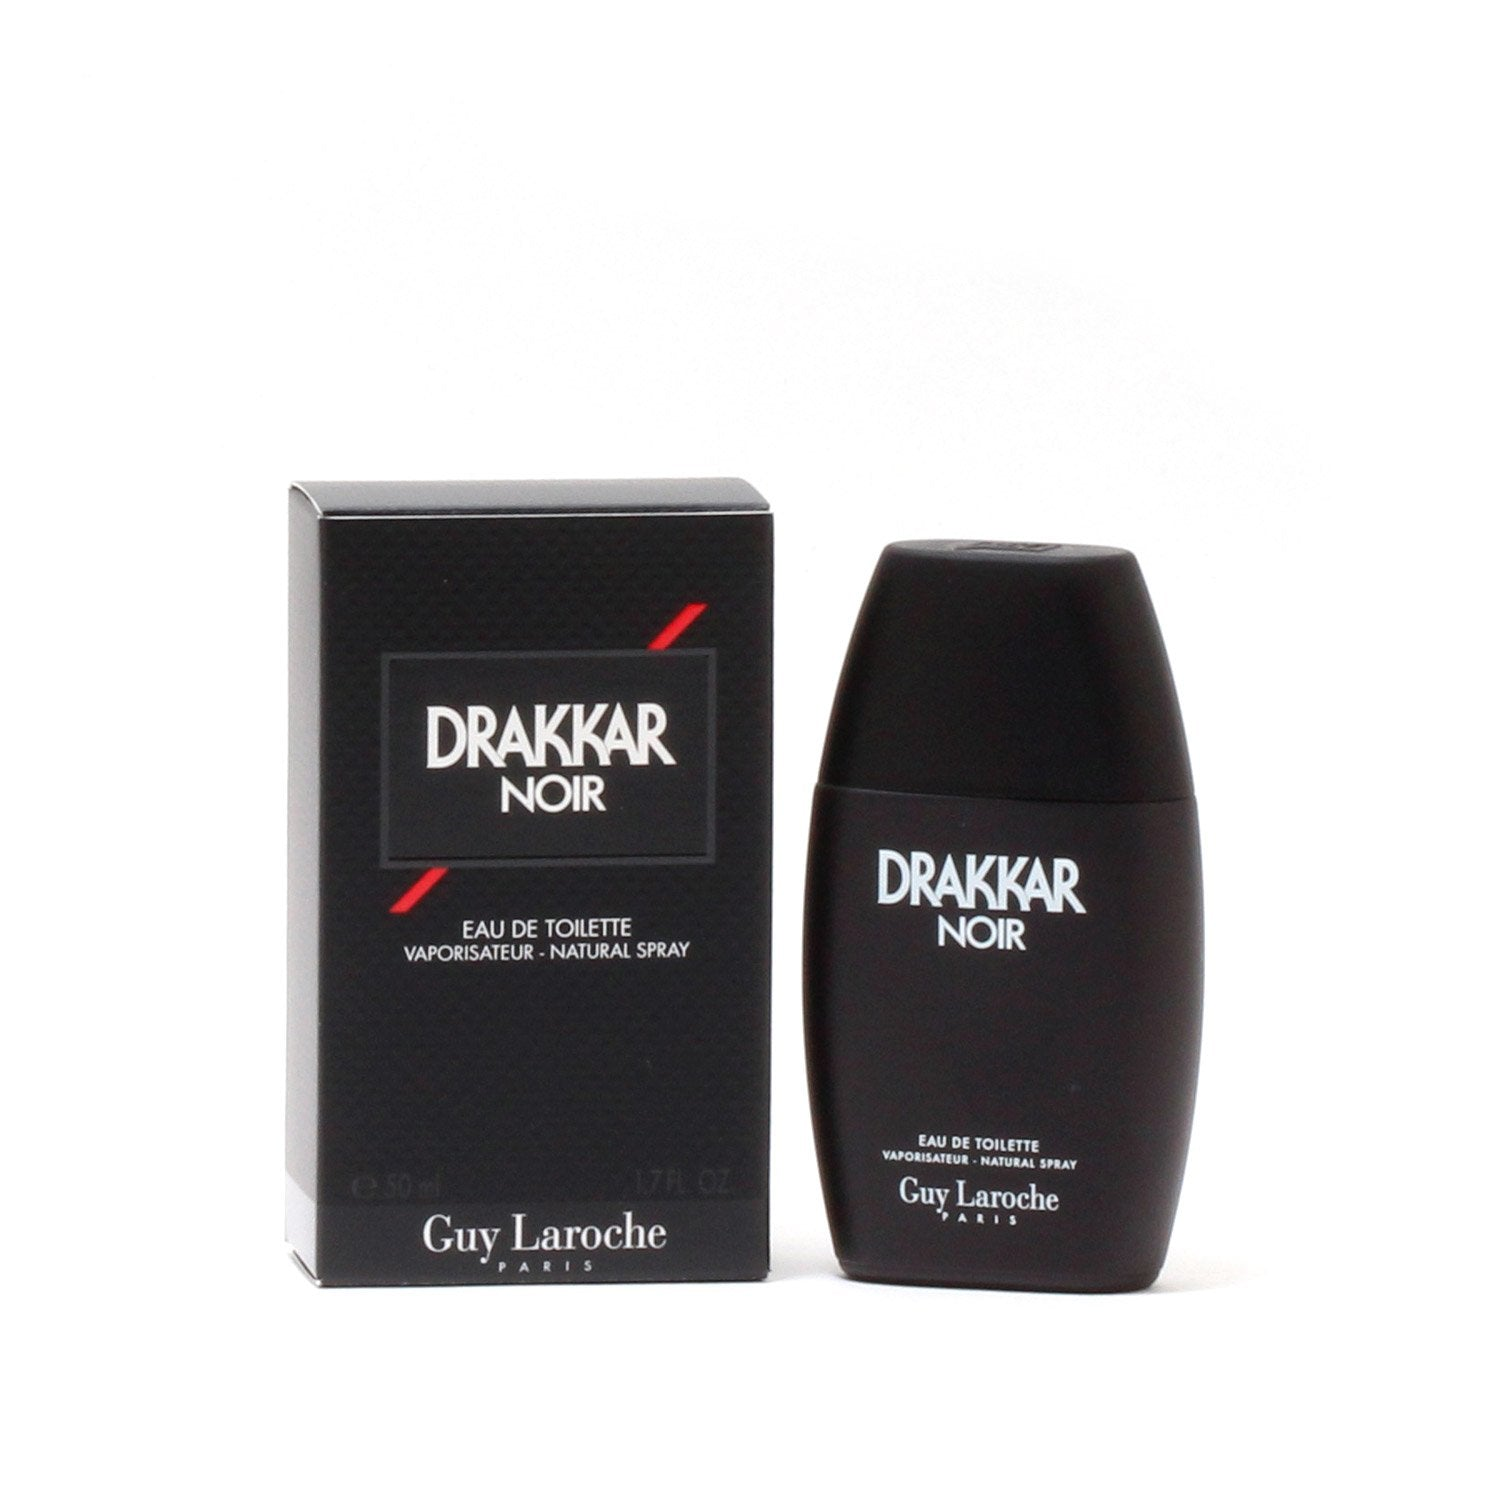 Cologne - DRAKKAR NOIR FOR MEN BY GUY LAROCHE - EAU DE TOILETTE SPRAY